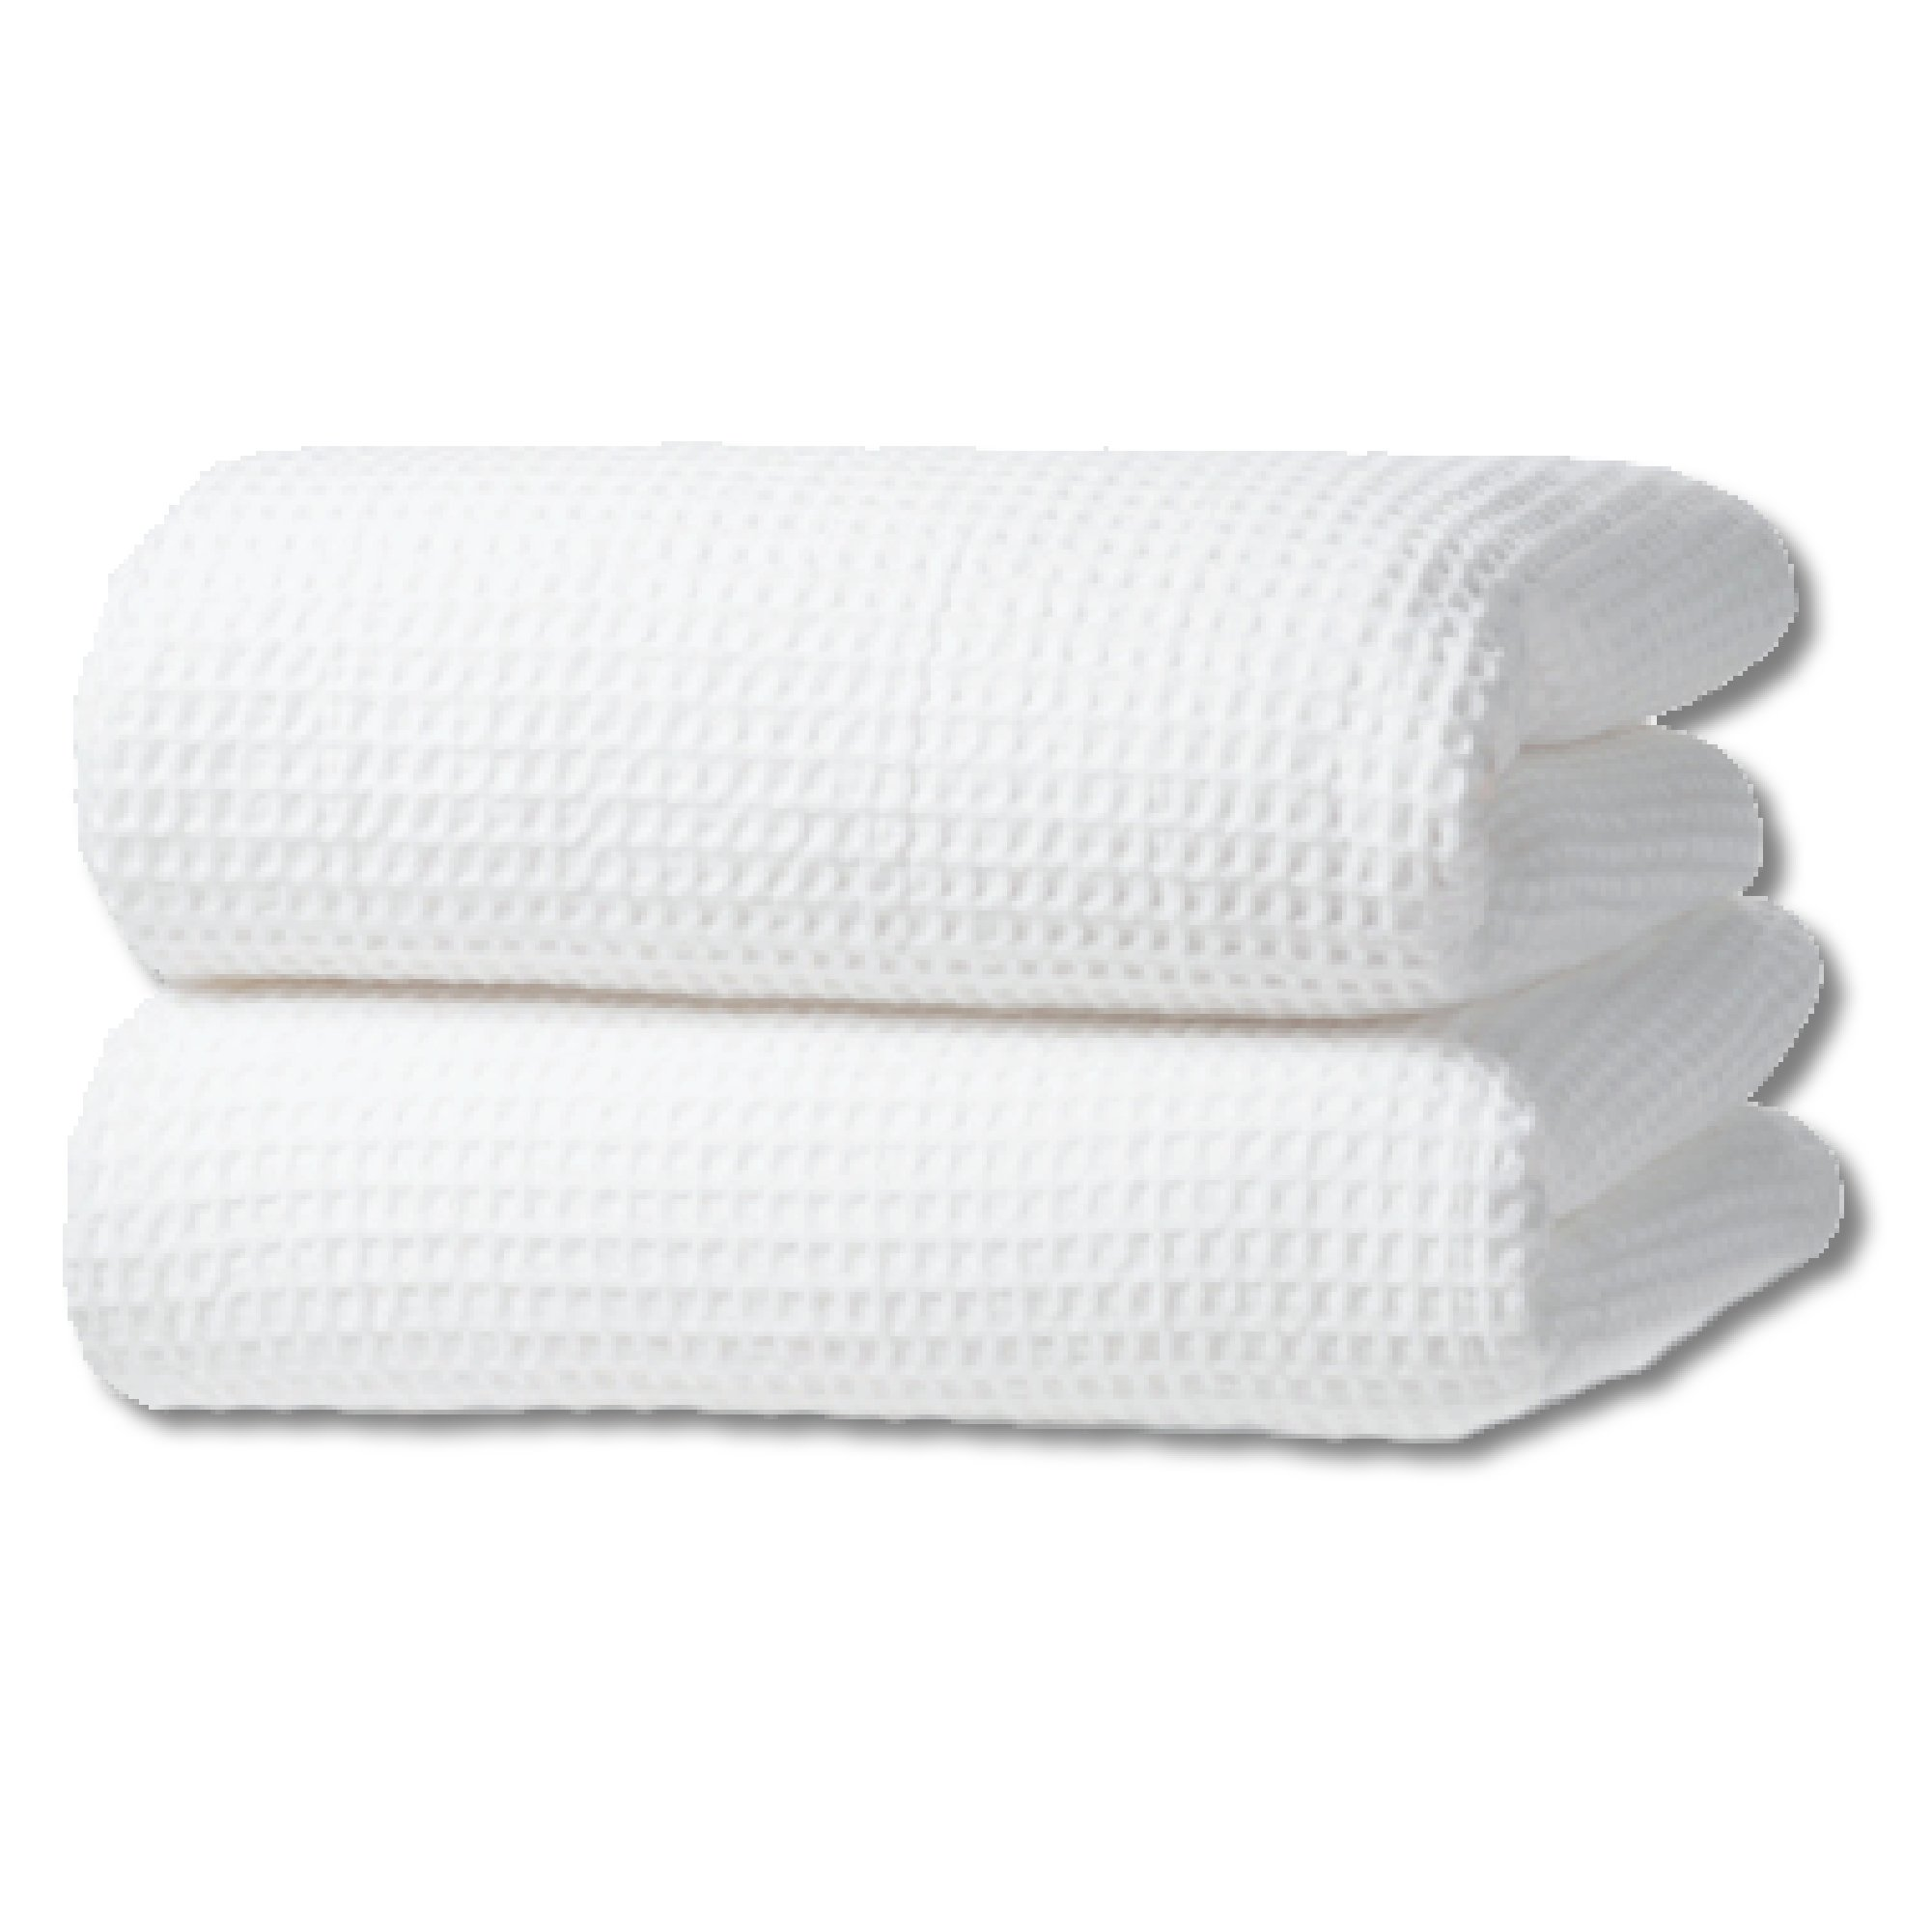 Gilden Tree 100% Natural Cotton Classic Waffle Weave Bath Sheet - Set of 2 (White)